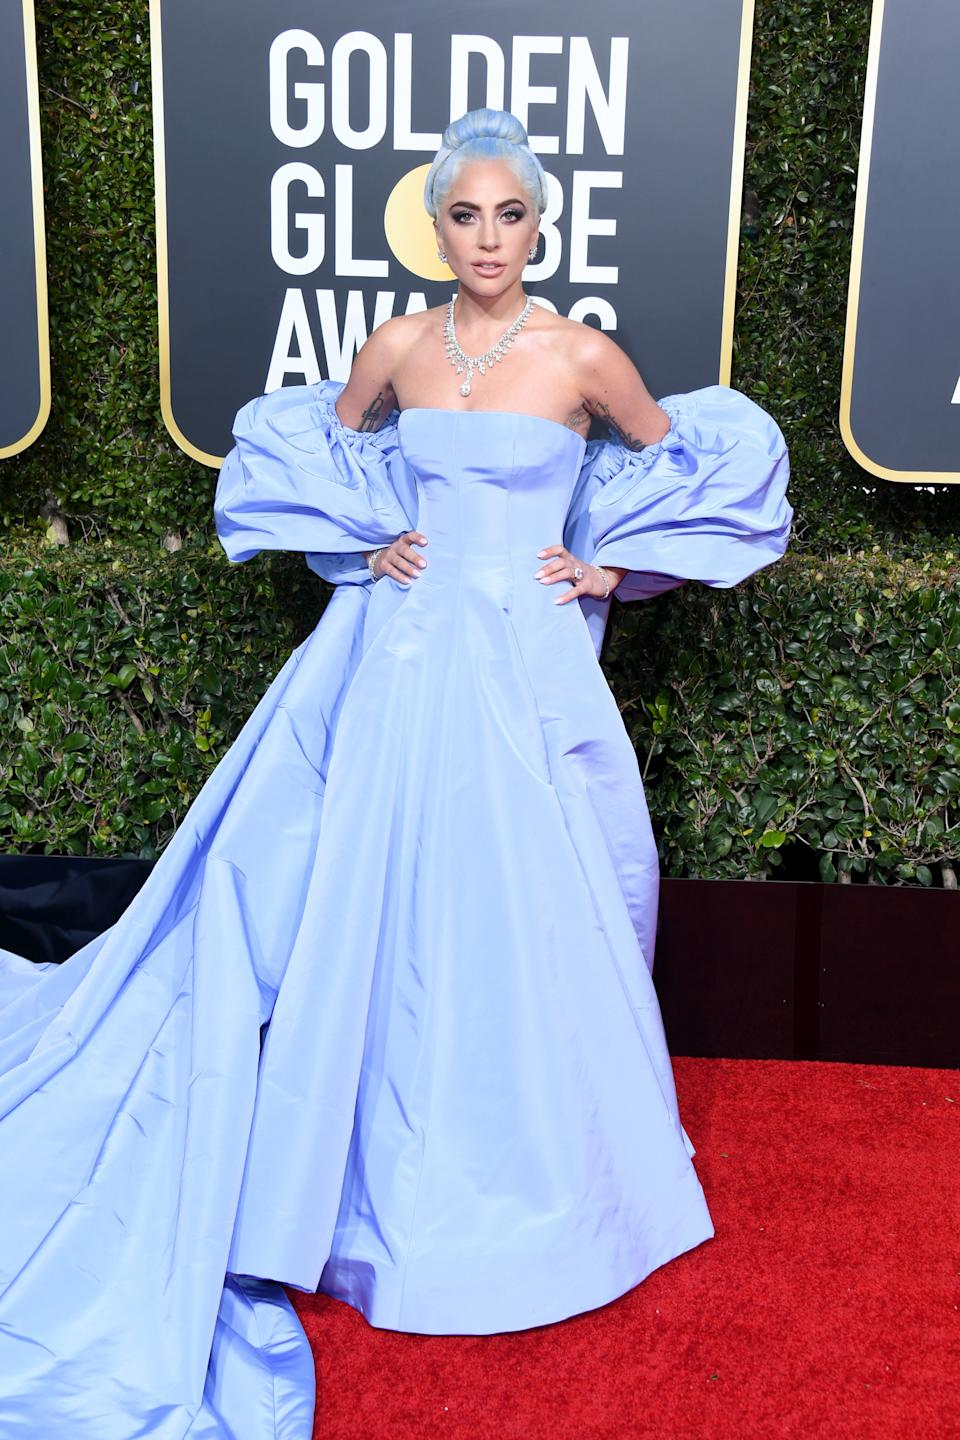 """<p>Lady Gaga has worn some questionable gowns over the years (i.e. the infamous meat dress) however the """"Star is Born"""" actress opted for a timeless Valentino gown for the 2019 awards. (Image via Getty Images)</p>"""